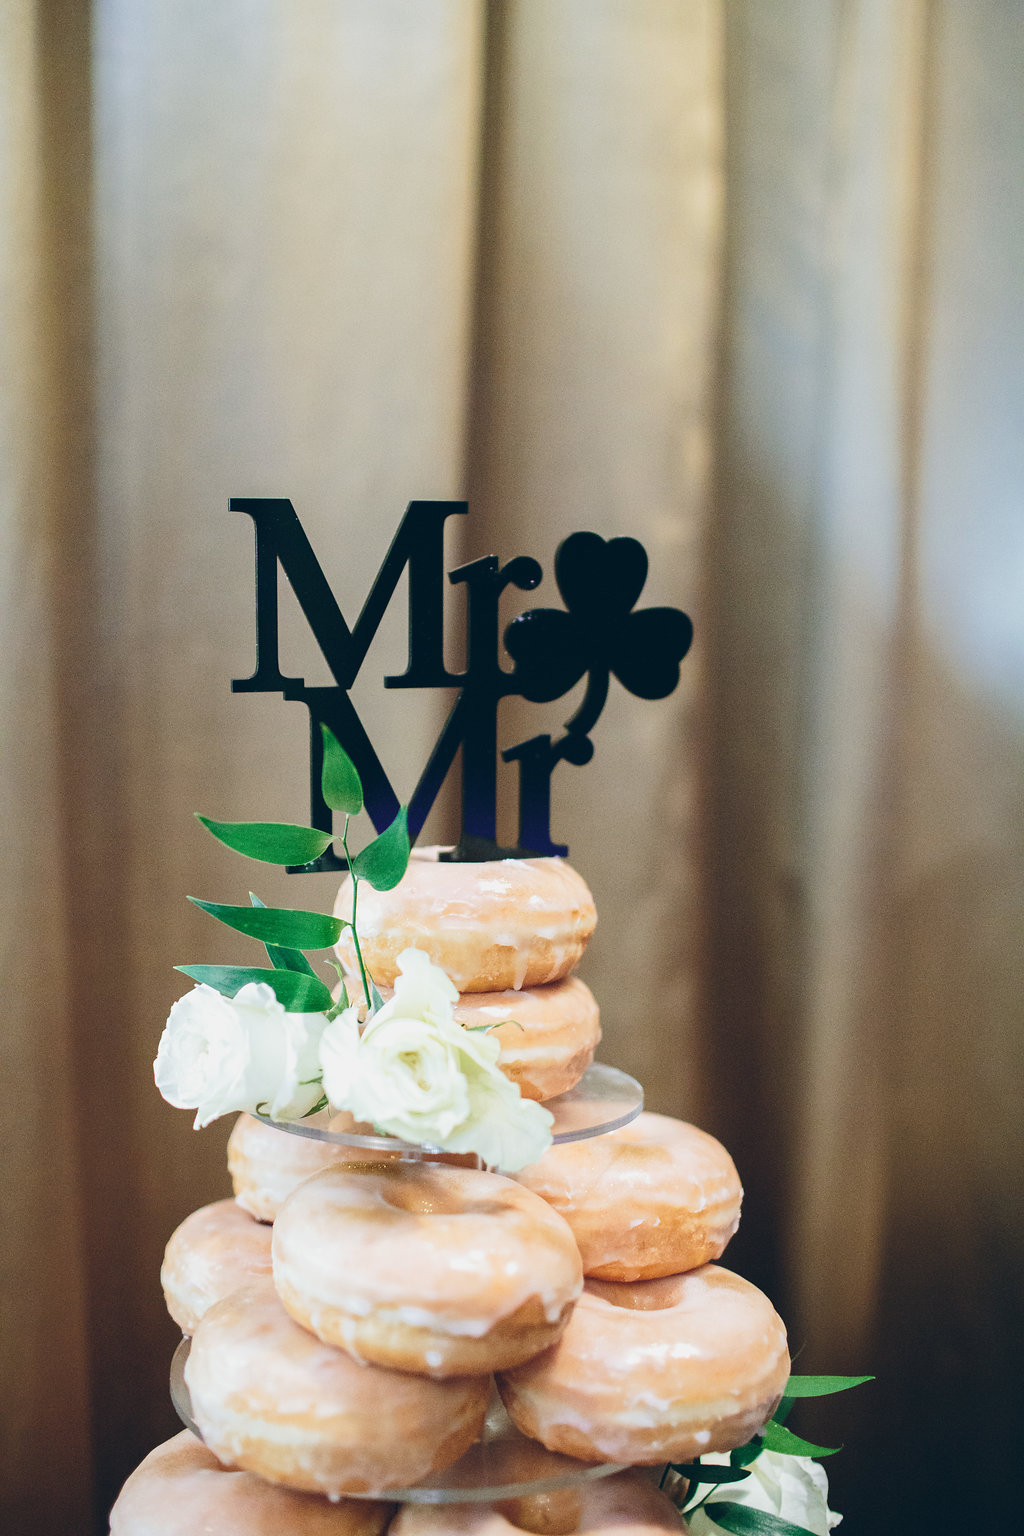 Mr. and Mr. cake topper